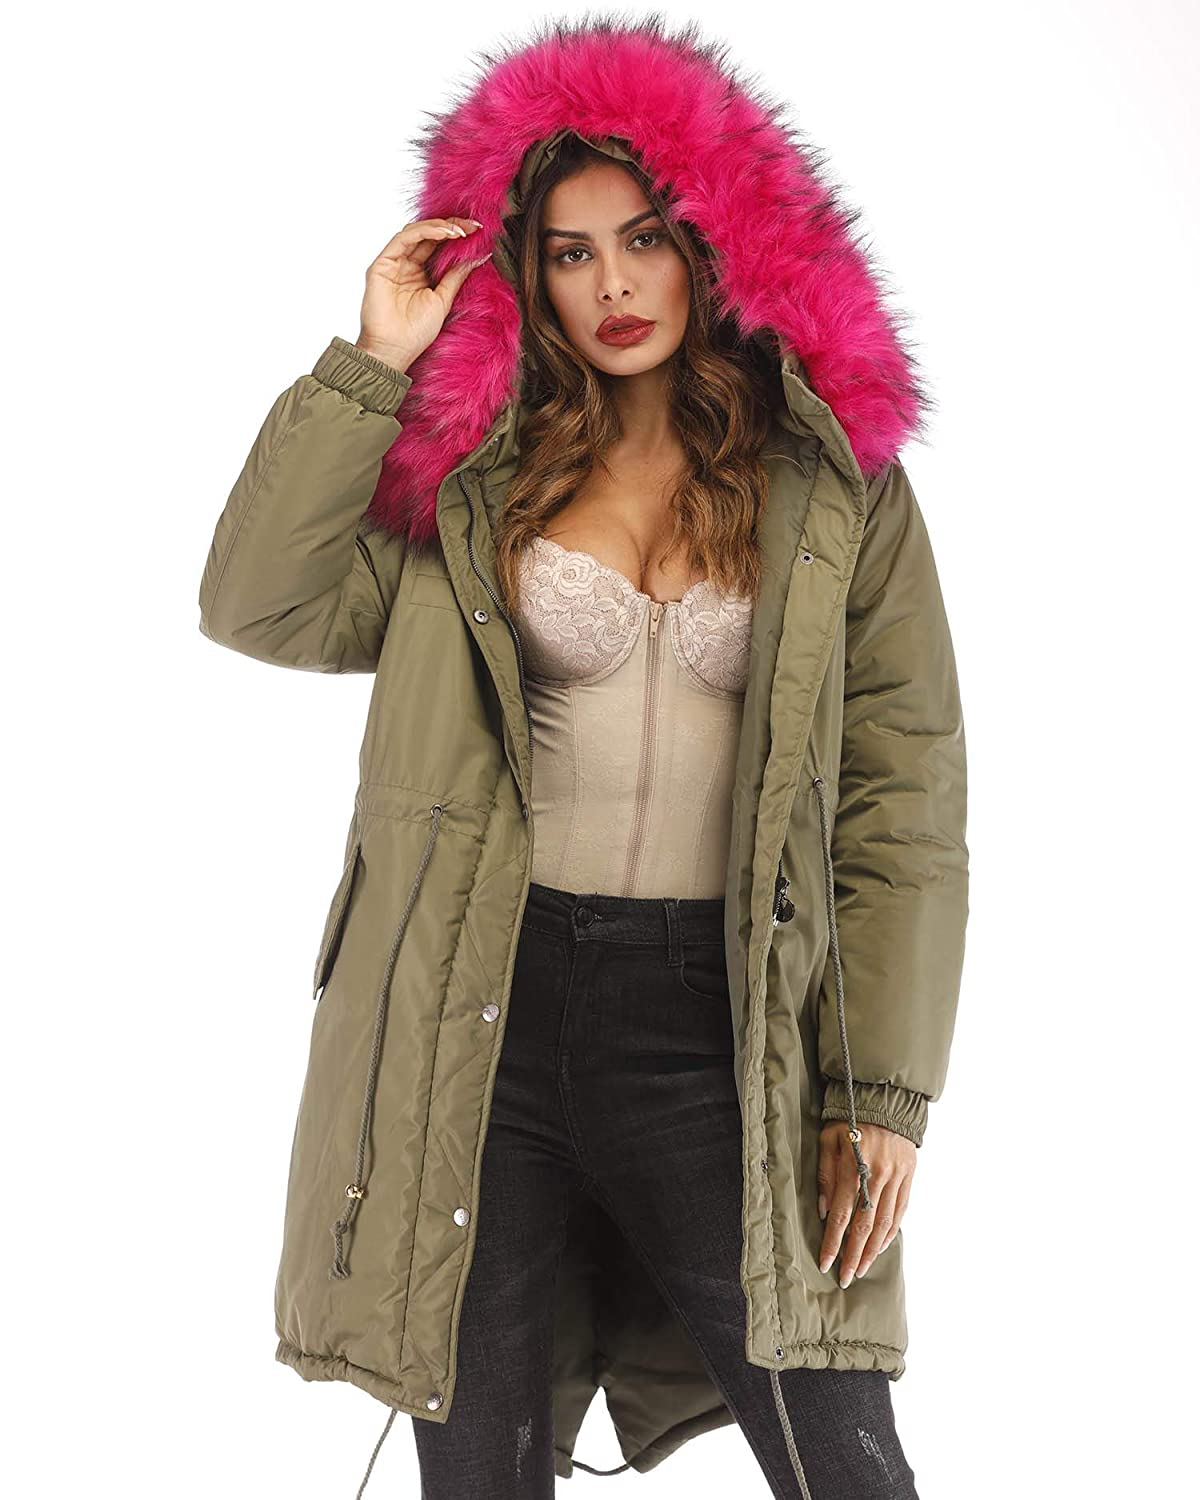 Aofur Womens Plus Size Winter Warm Long Thick Down Hooded Parka Coat Cardigan Zip Jacket Top Fashion Overcoat Outwear